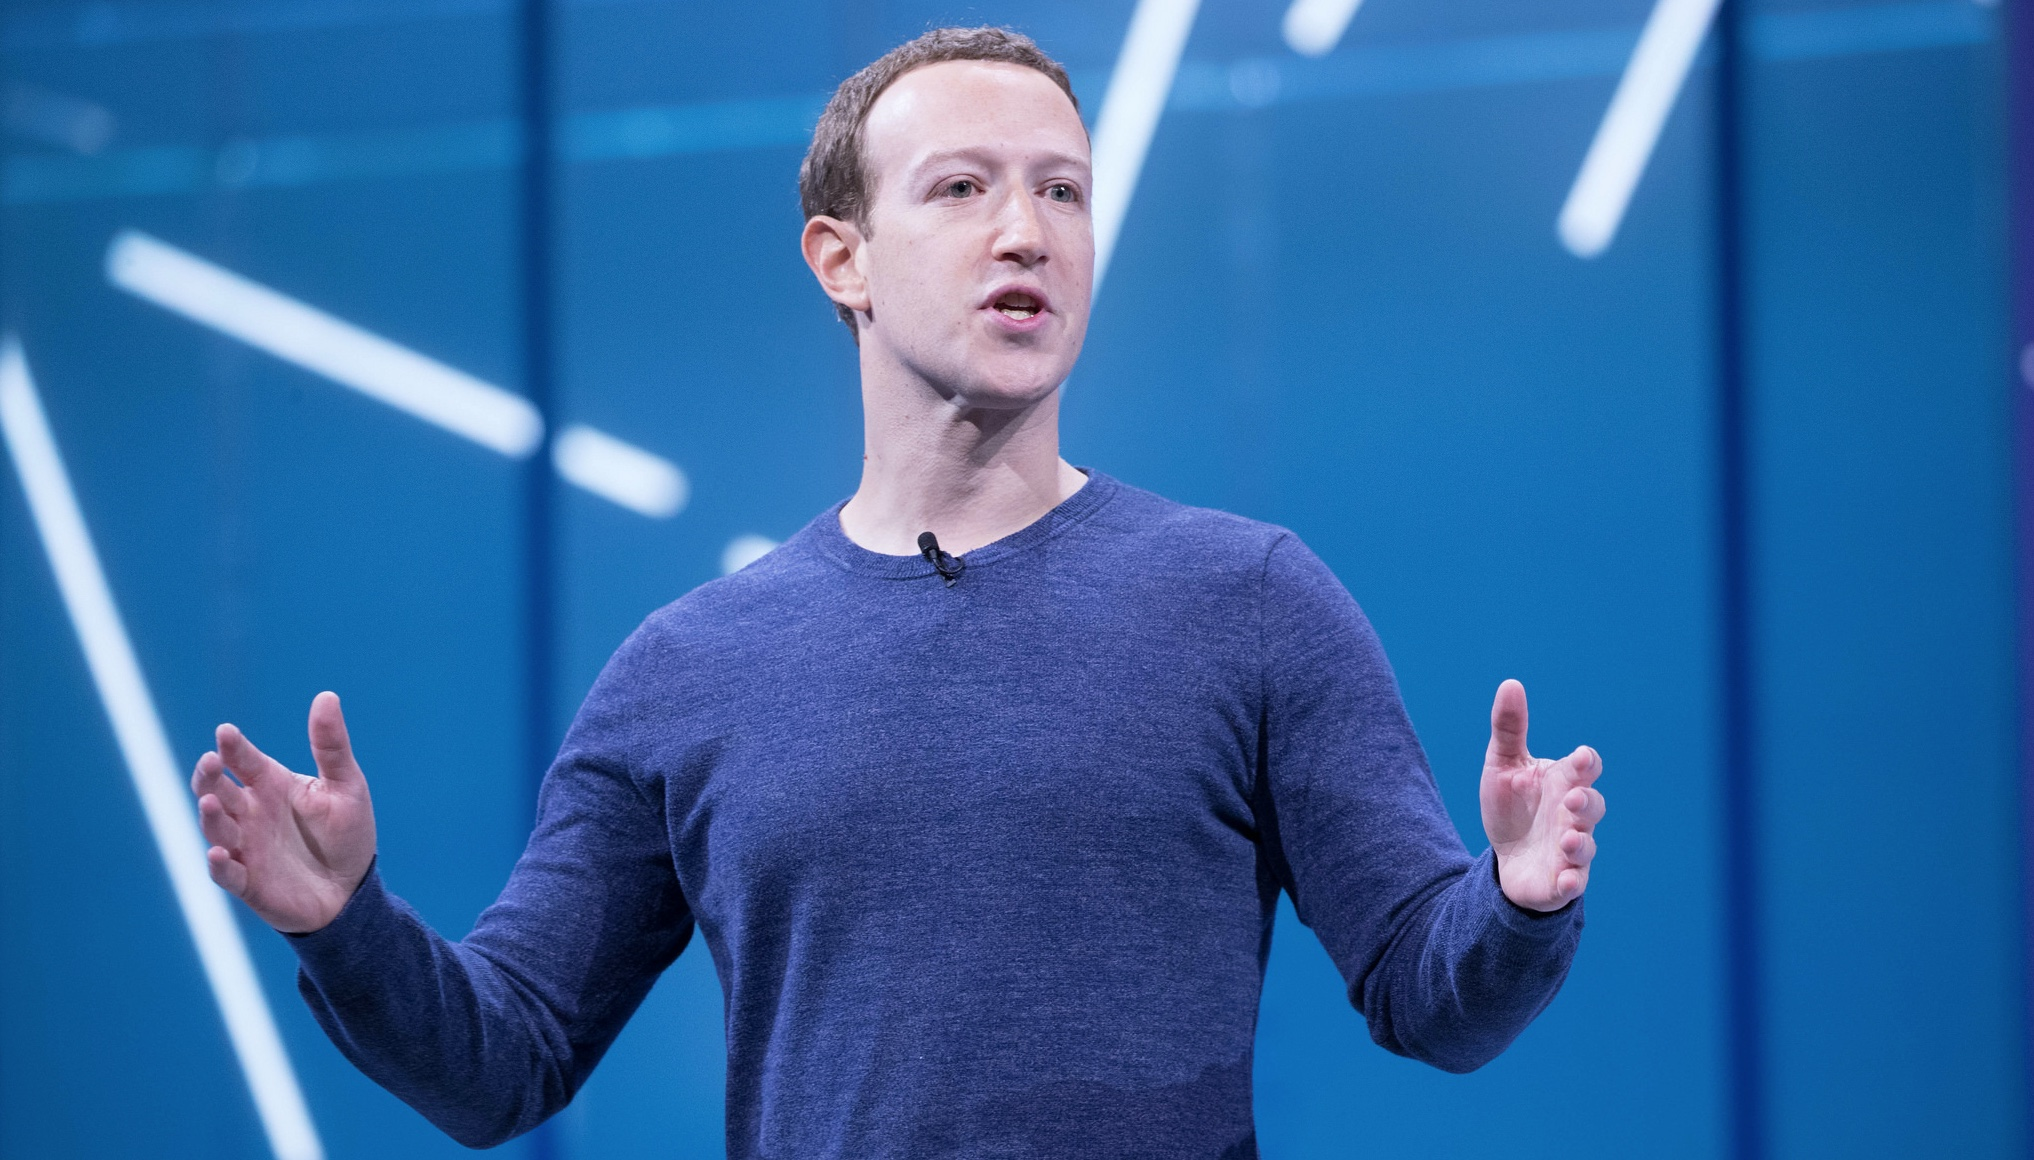 Mark Zuckerberg F8 2018 Keynote. This image was originally posted to Flickr by Anthony Quintano at https://flickr.com/photos/22882274@N04/41118886324. Published here under Creative Commons (CC BY 2.0) https://creativecommons.org/licenses/by/2.0/